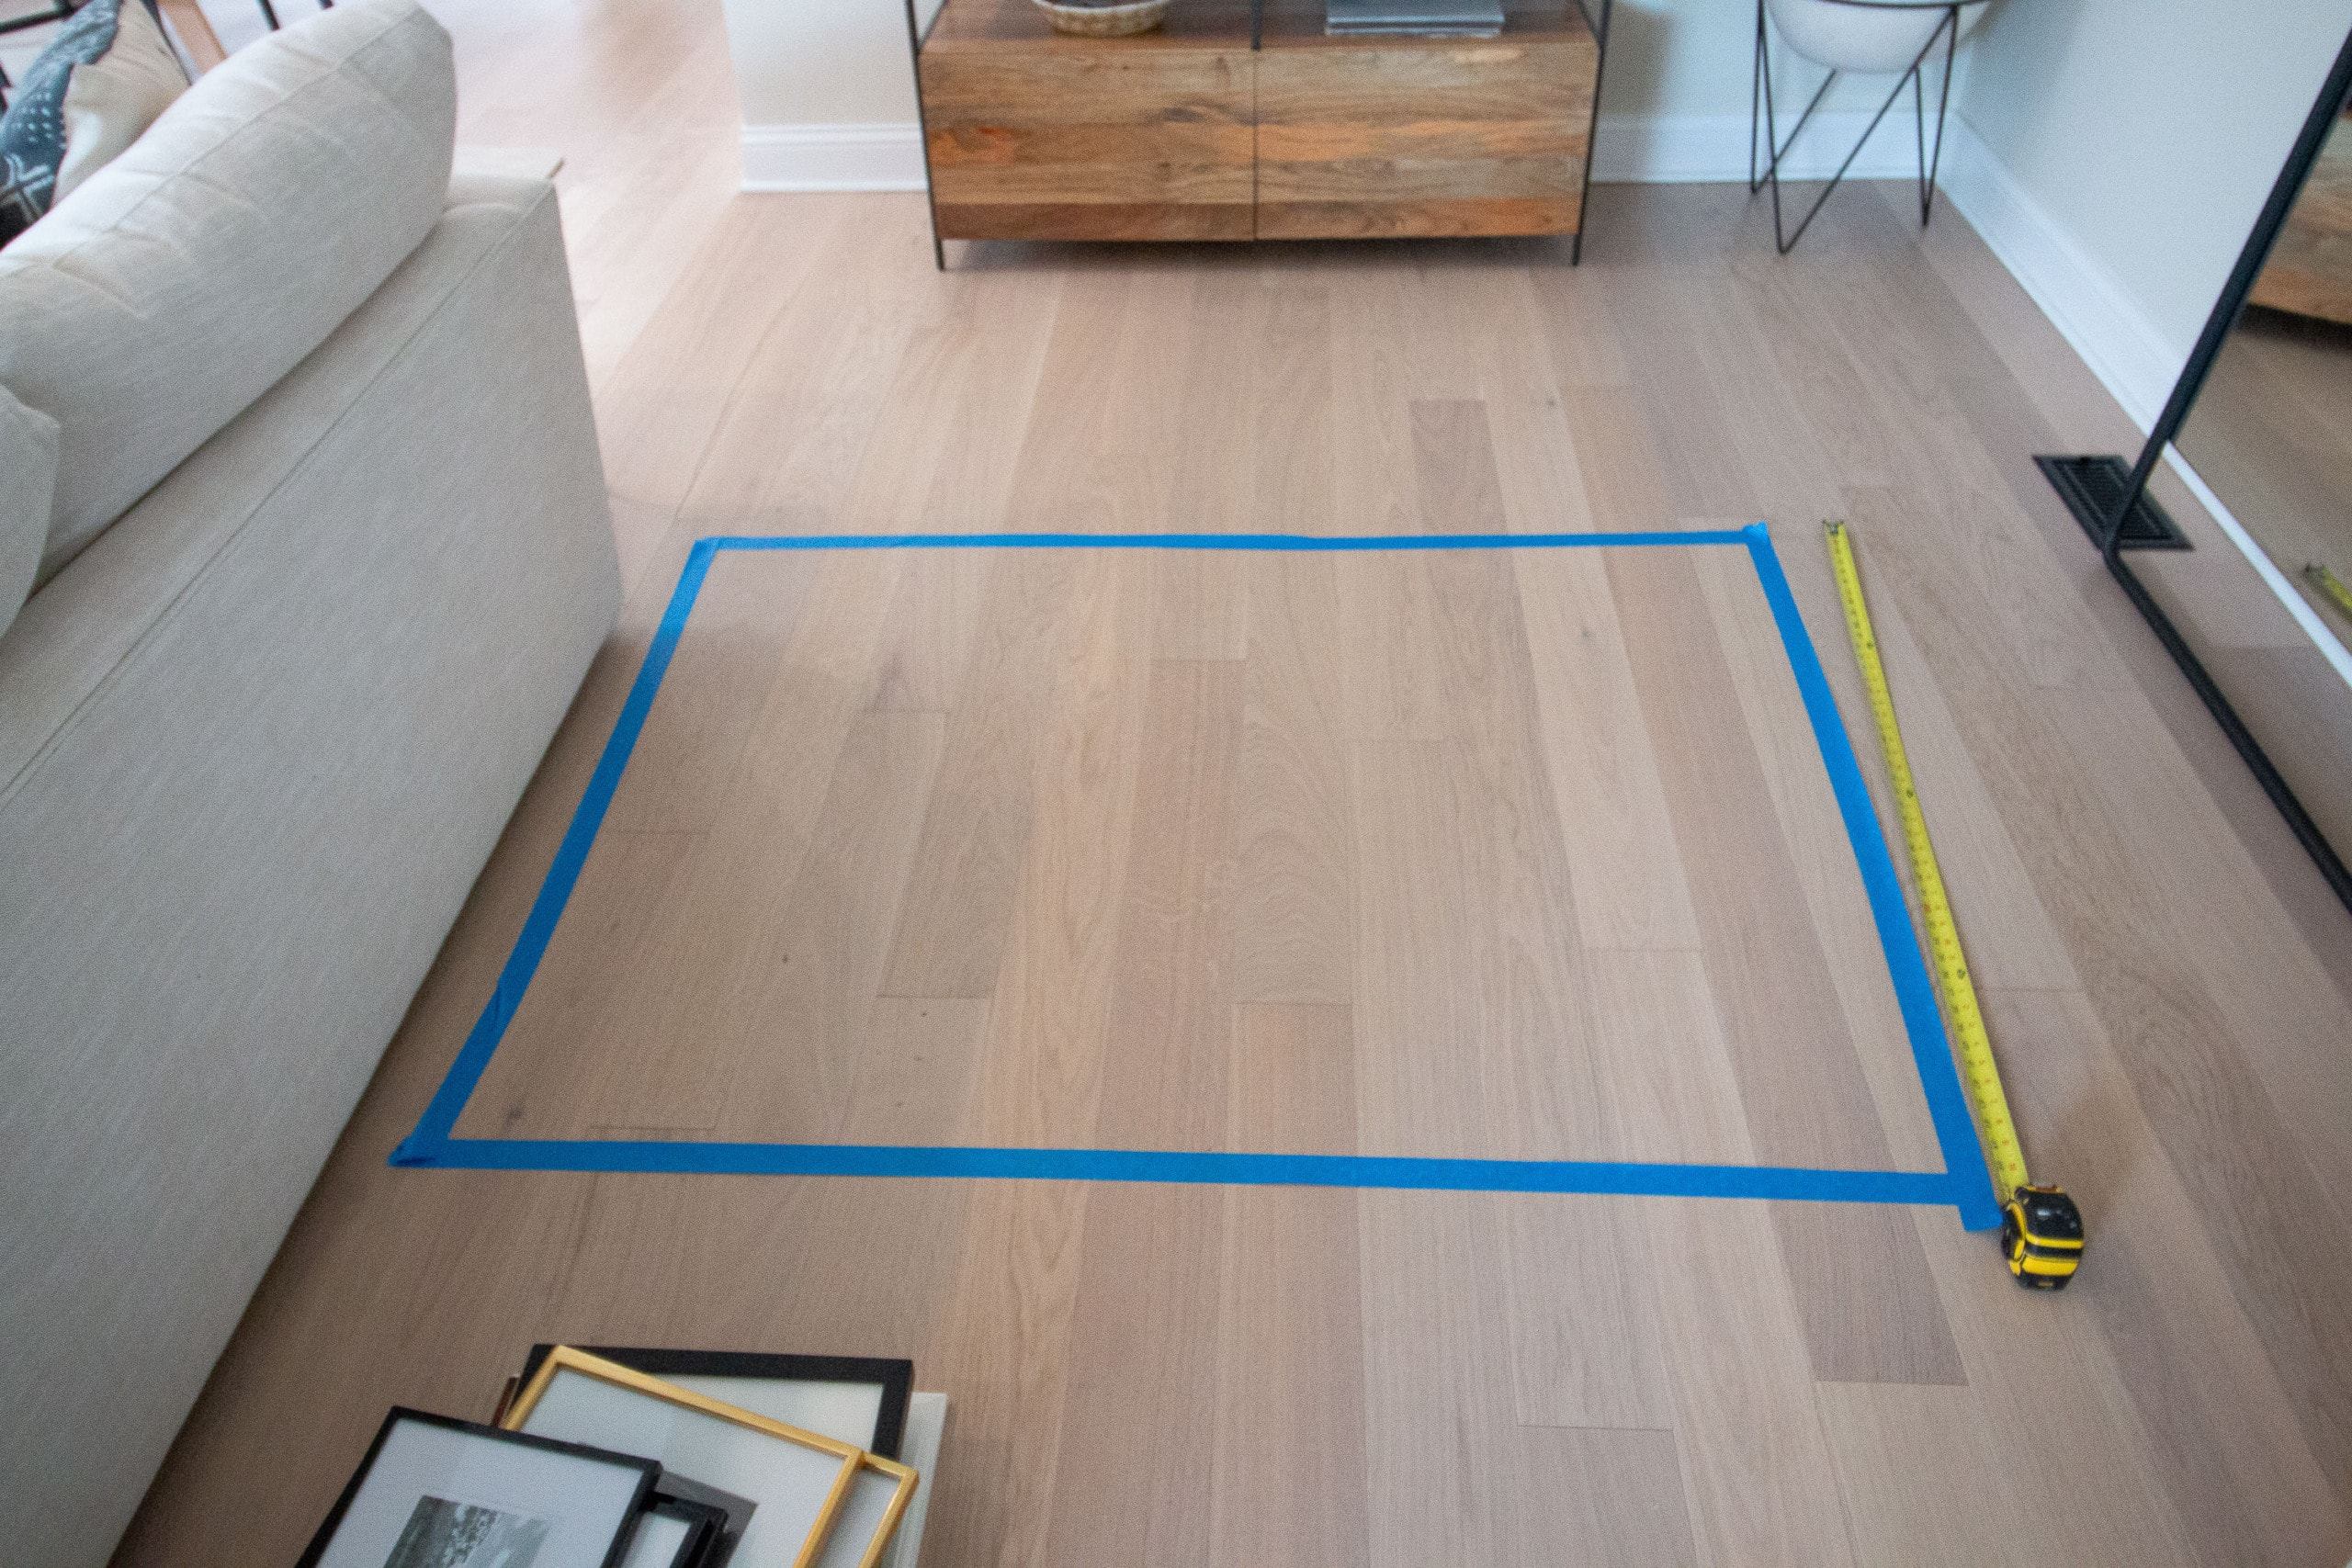 Transfer your painter's tape to the floor